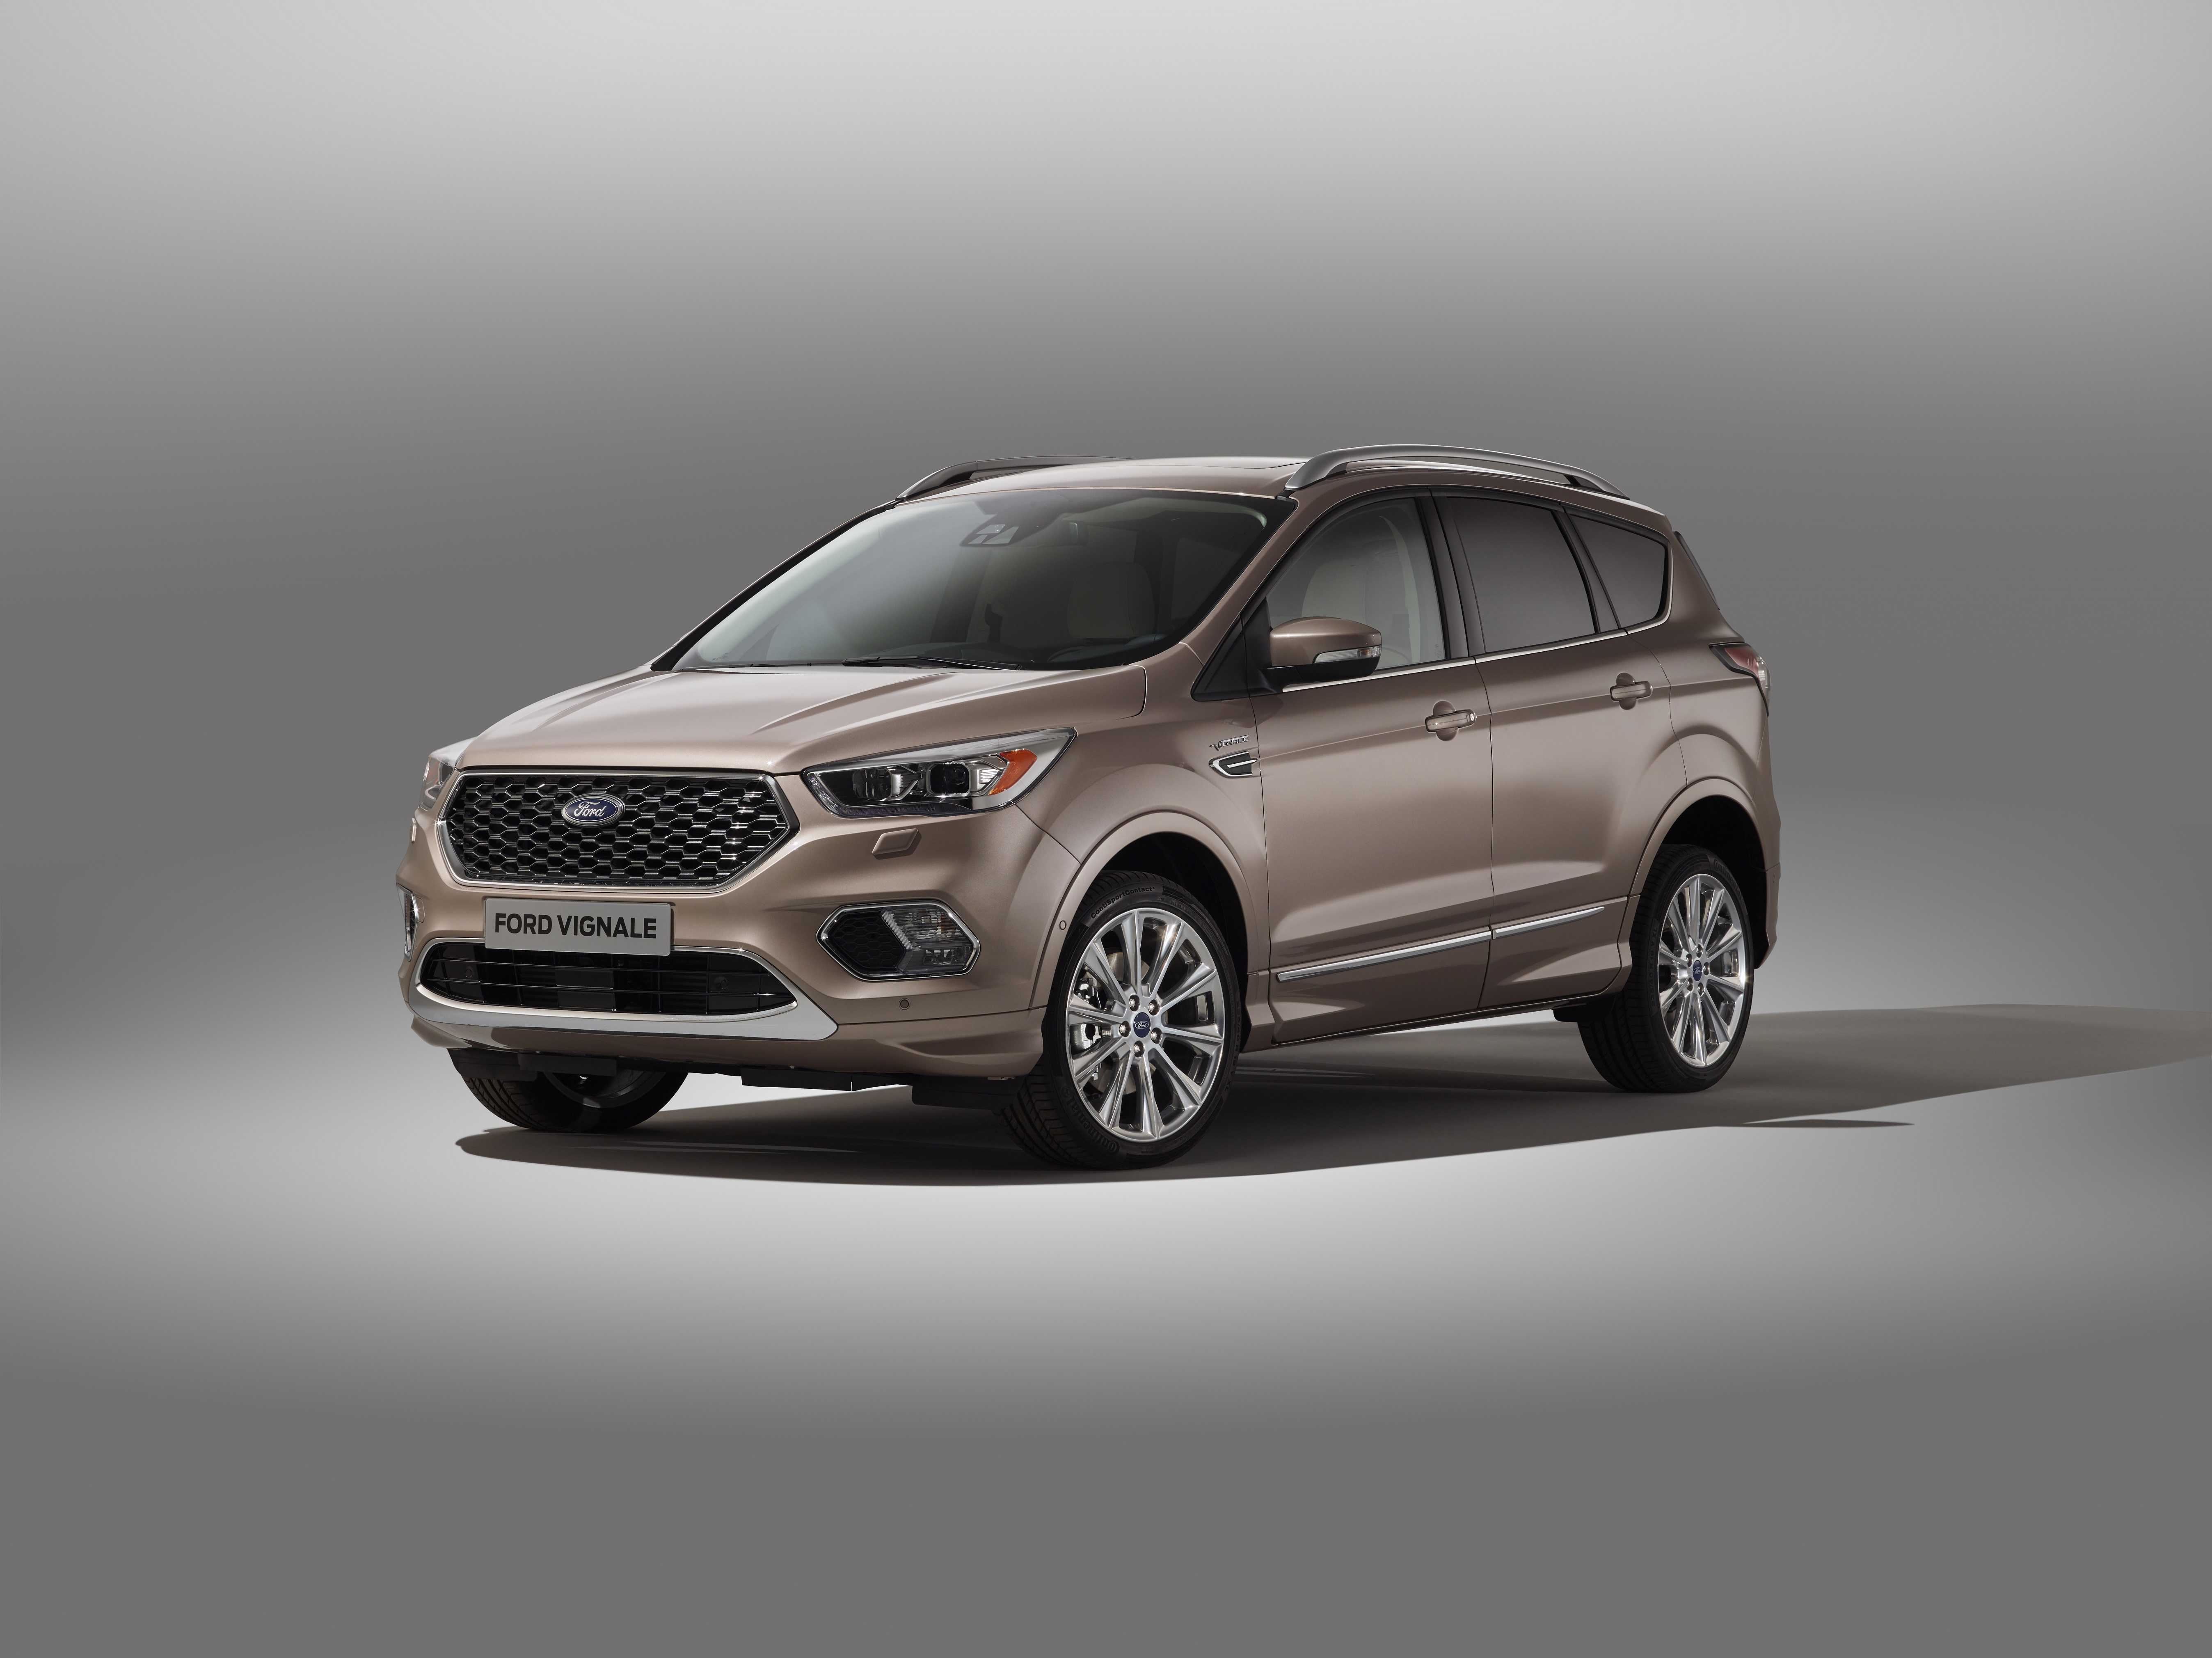 ford pr sentiert neuen kuga vignale aufgewertetes suv. Black Bedroom Furniture Sets. Home Design Ideas